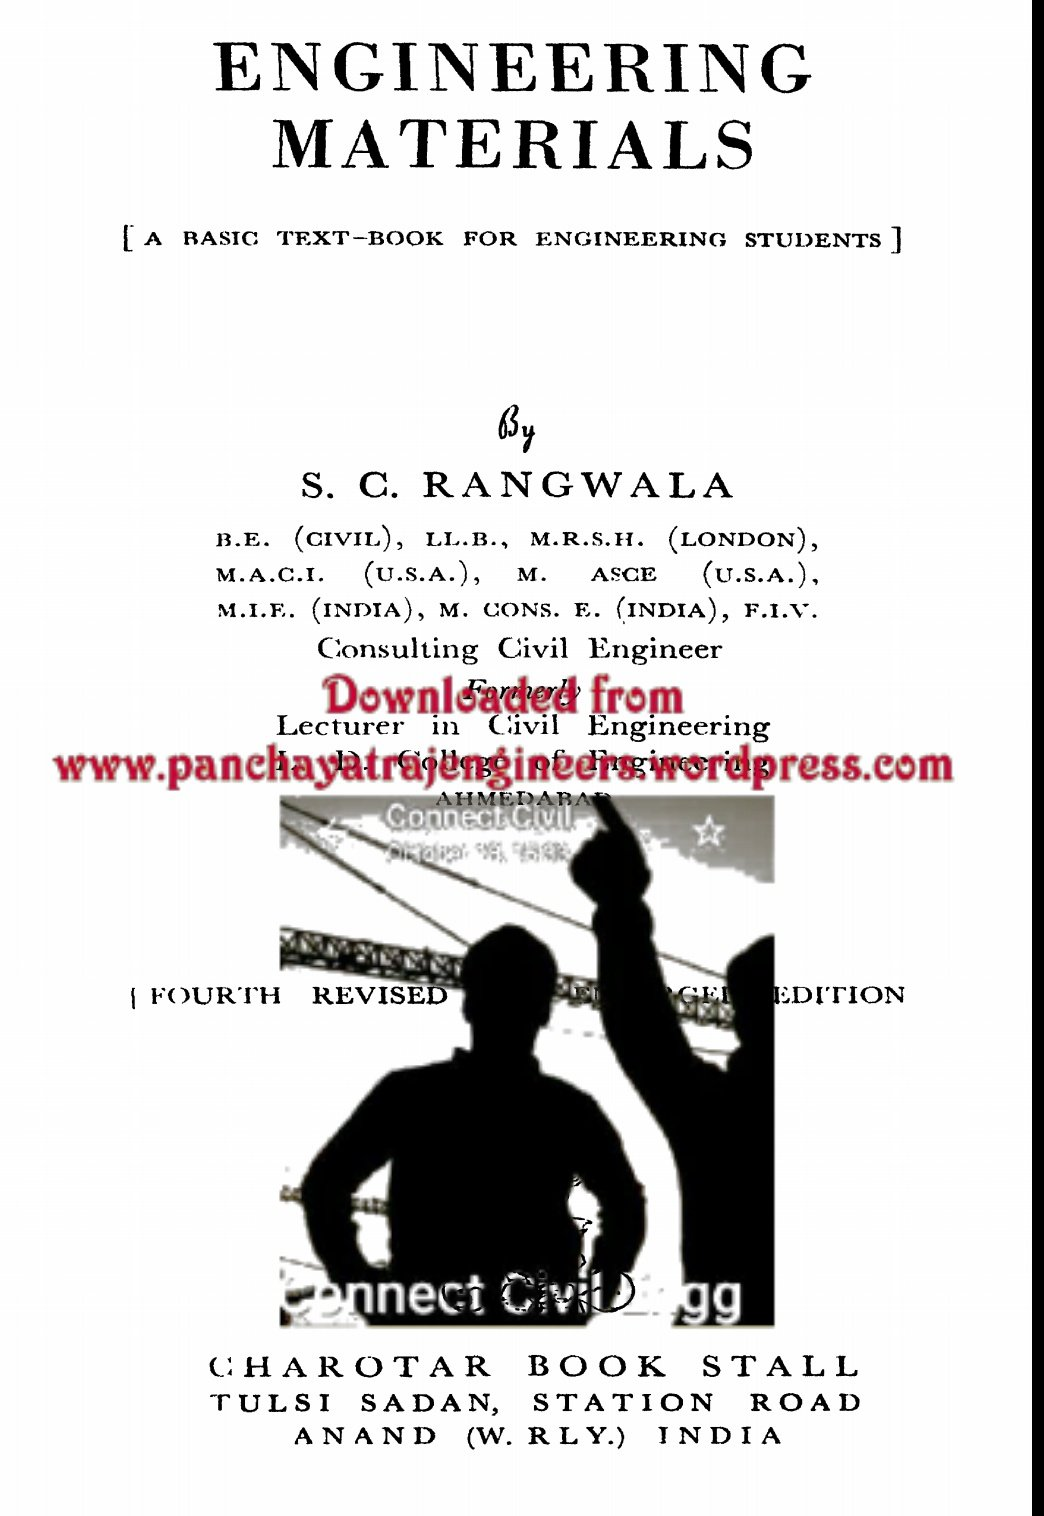 Materials rangwala pdf engineering